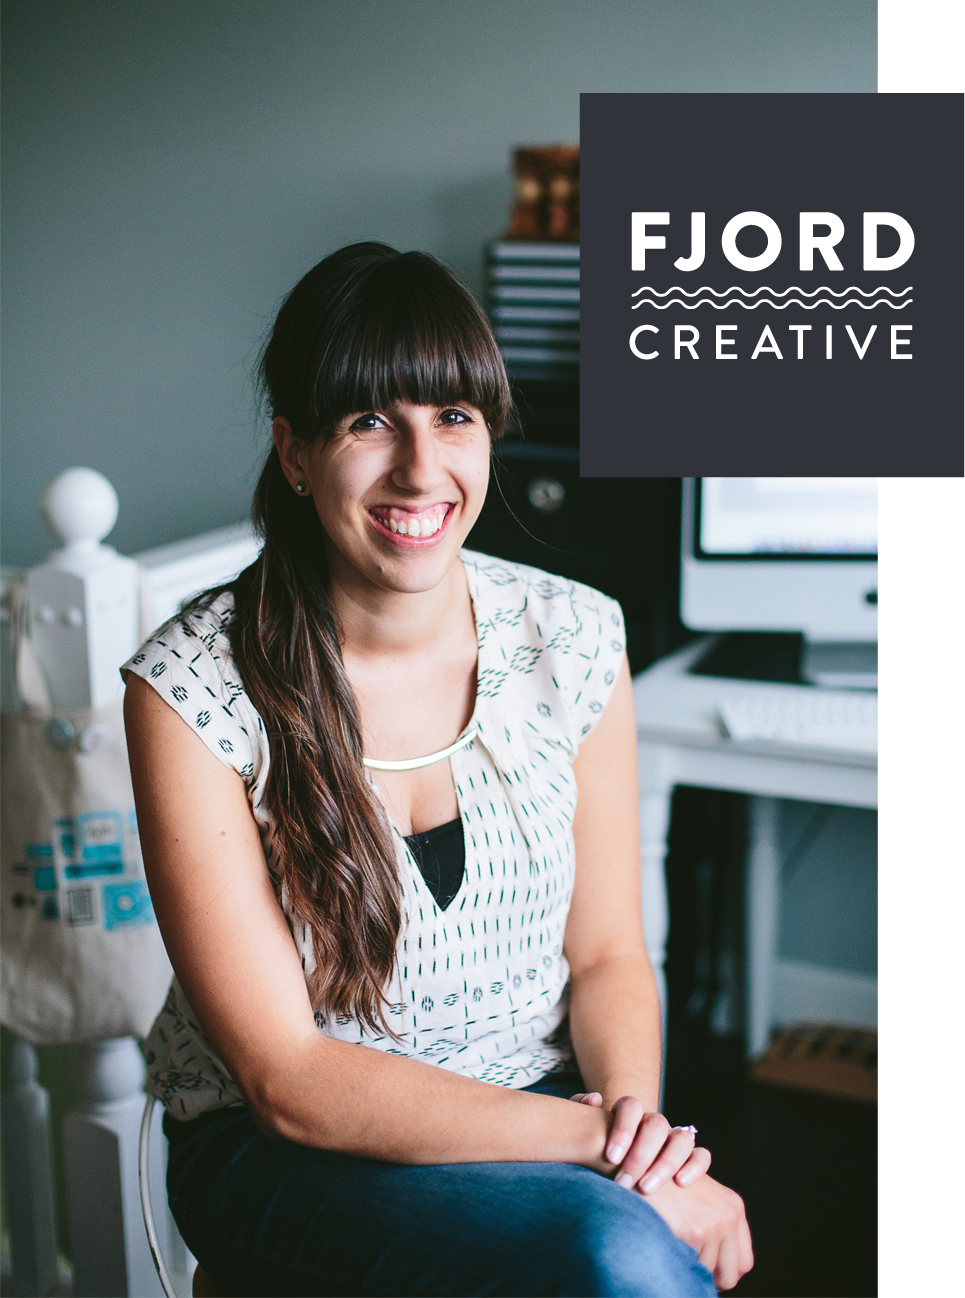 Fjord Creative Branding and Graphic Design